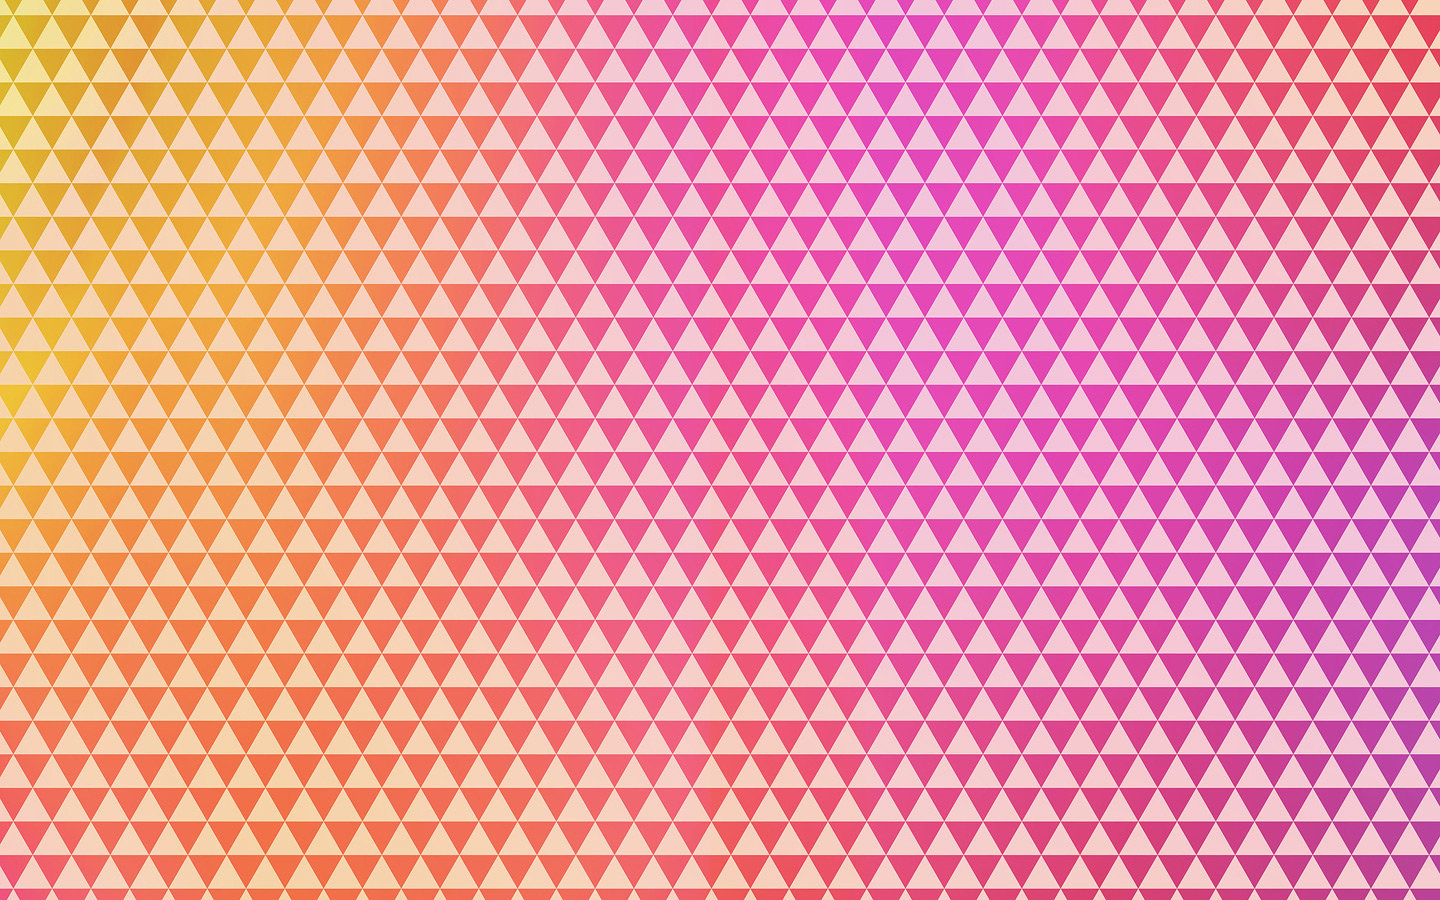 Awesome Triangle free wallpaper ID:269457 for hd 1440x900 computer